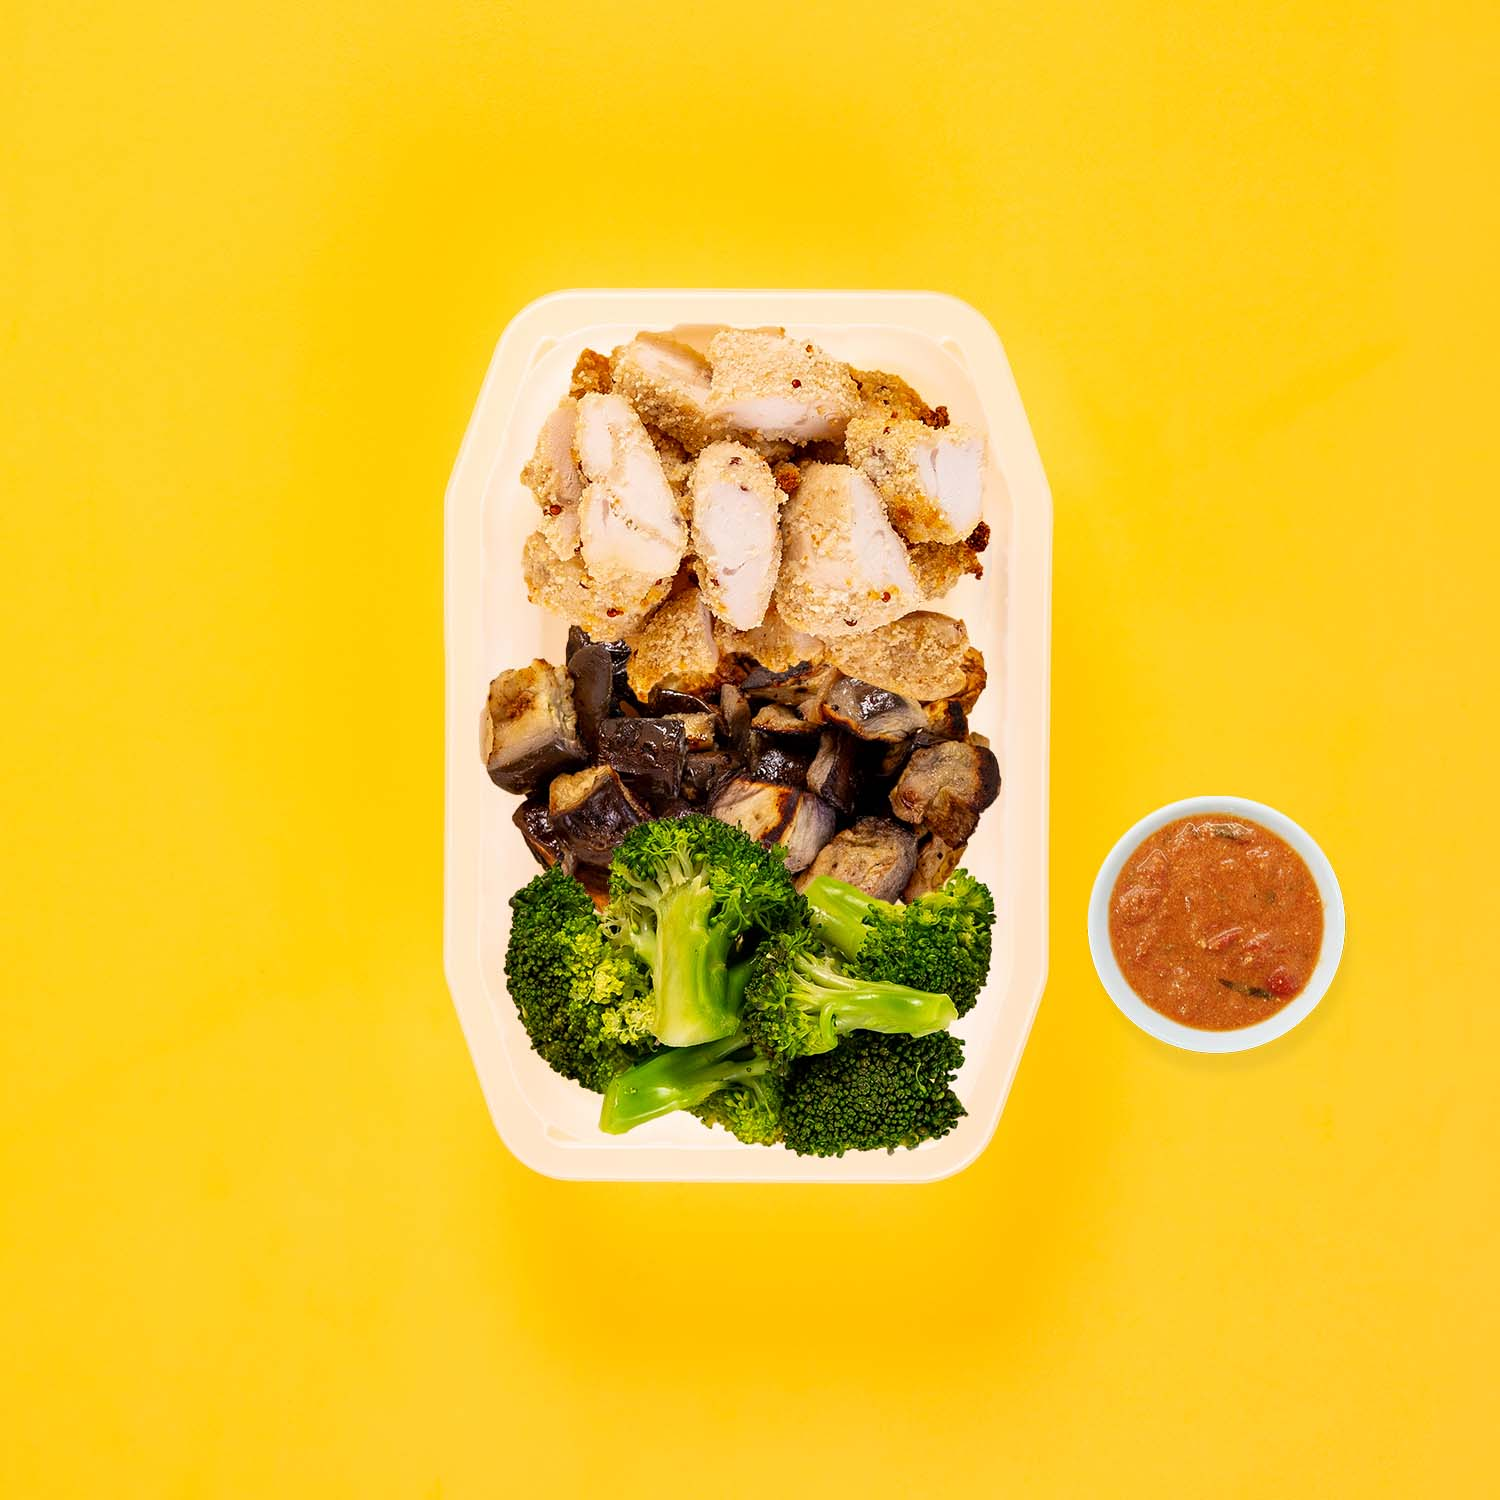 150g Quinoa Chicken Tenders 150g Miso Eggplant 200g Broccoli Thai Red Curry